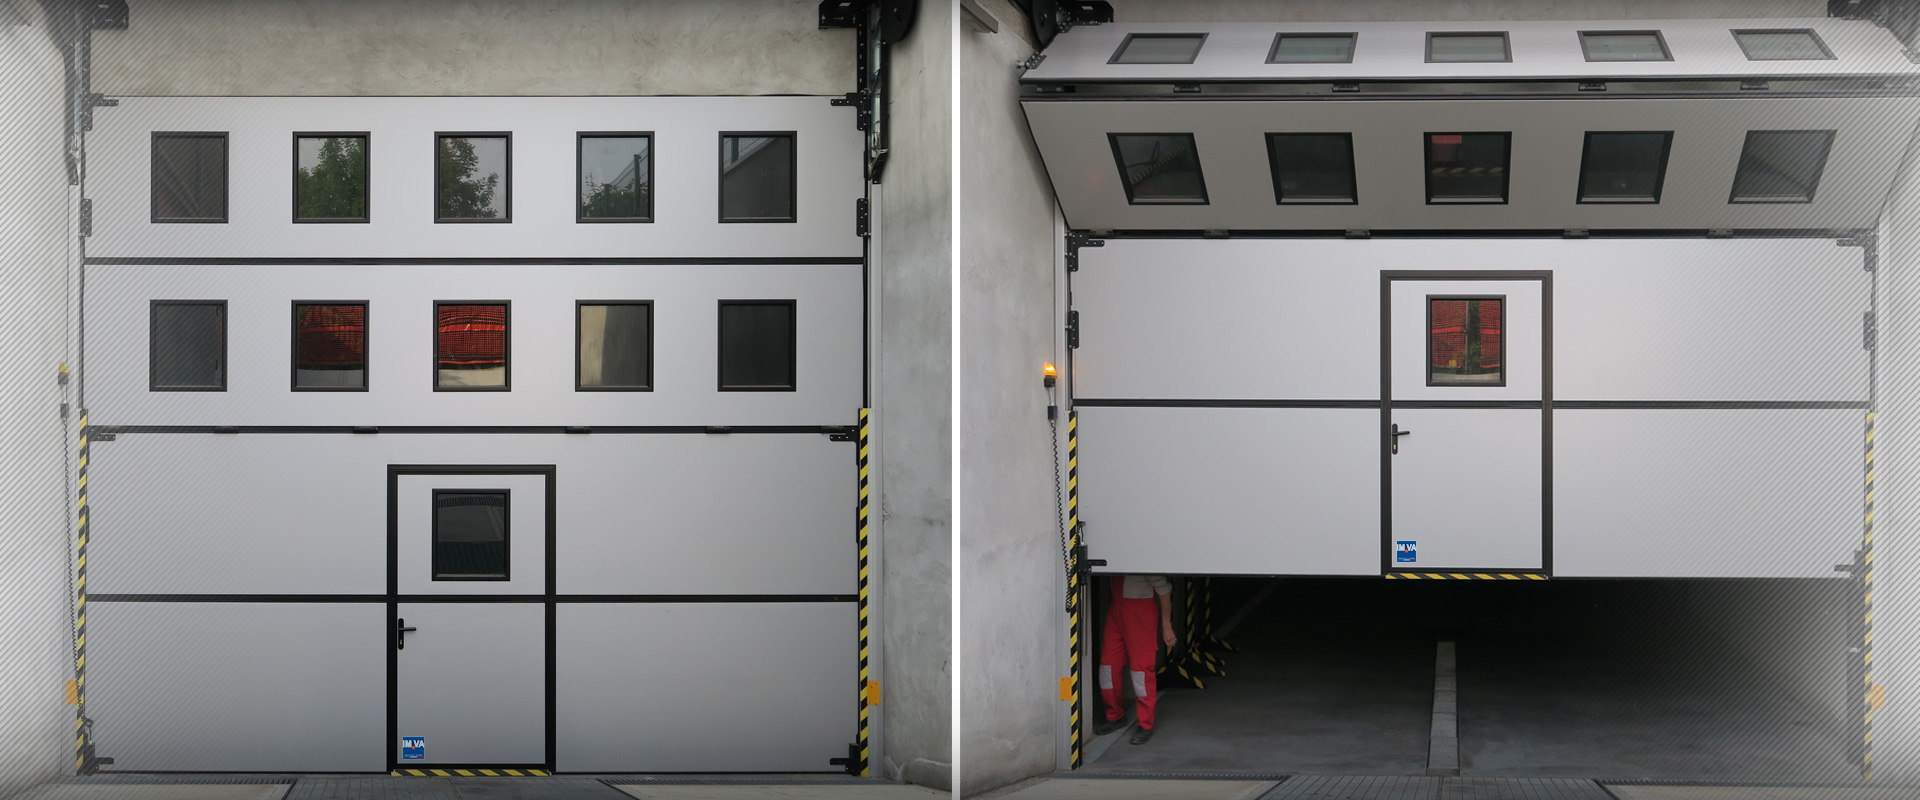 VERTICAL_FOLDING_DOOR_IMVA_VERTIGO_5.jpg